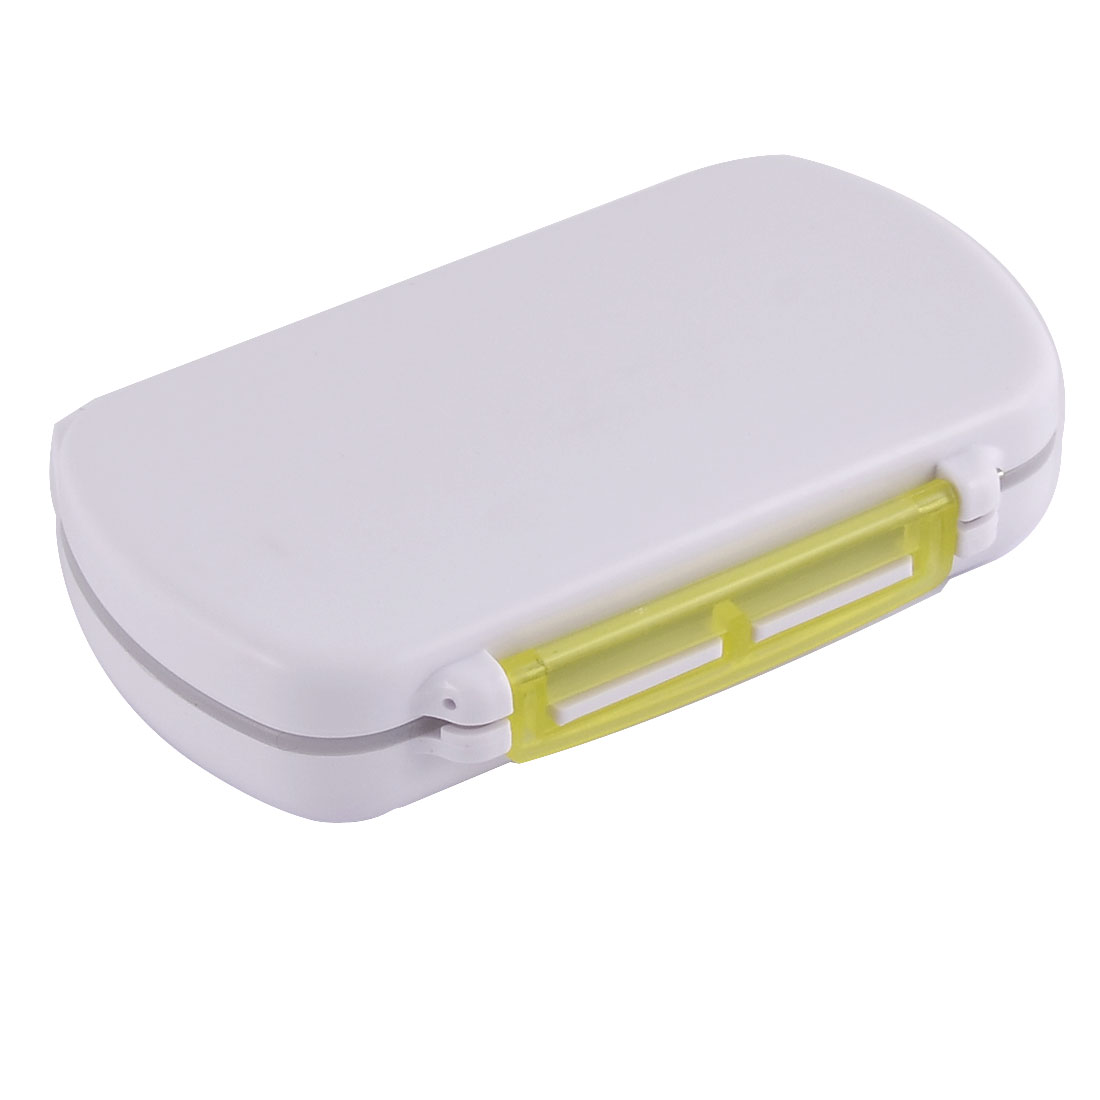 Plastic Square Design Pills Coins Jewelry Storage Box Case Clear Yellow